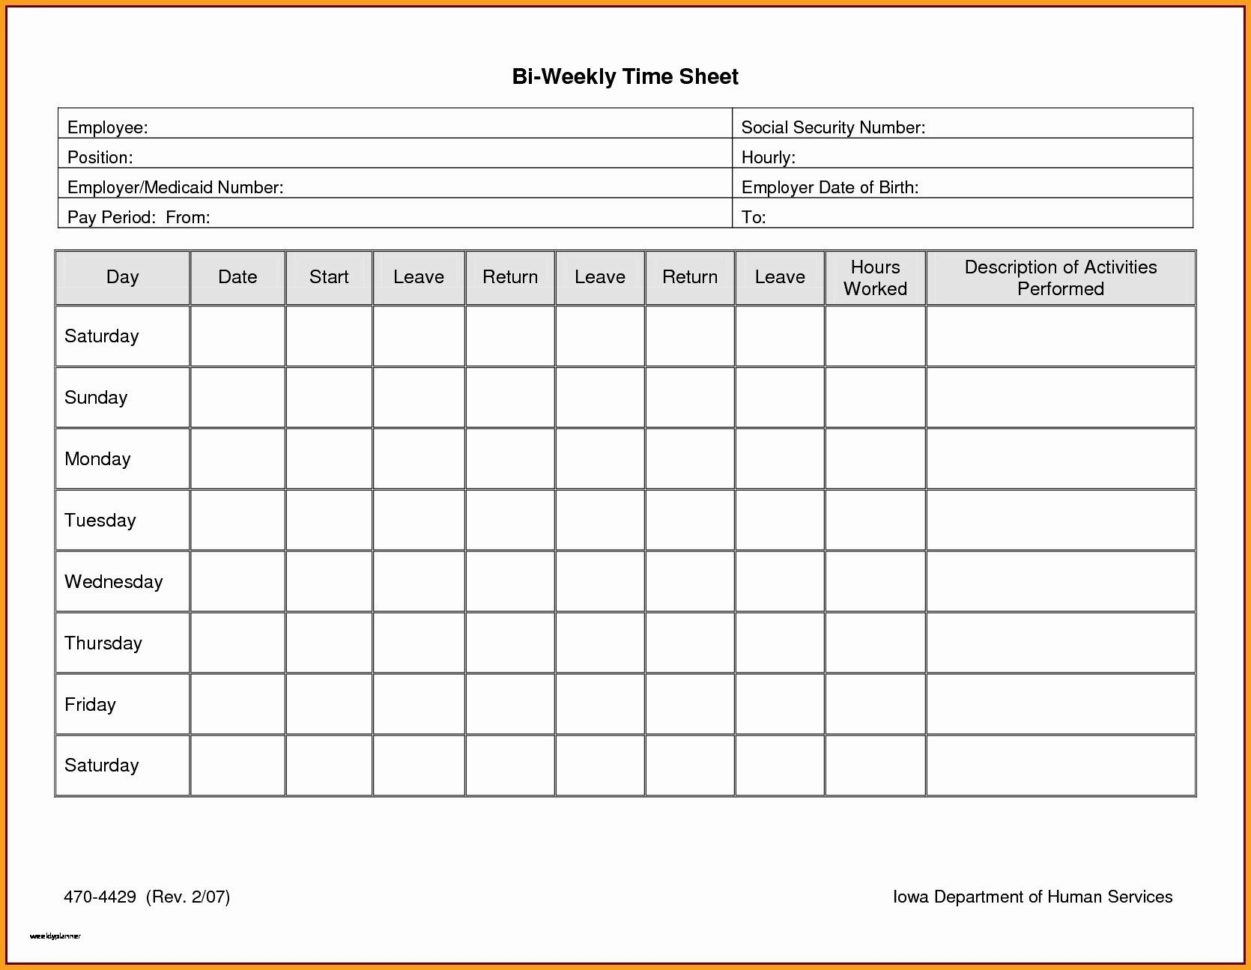 Super Bowl Squares Template Excel Weekly Football Pool Excel With Super Bowl Spreadsheet Template